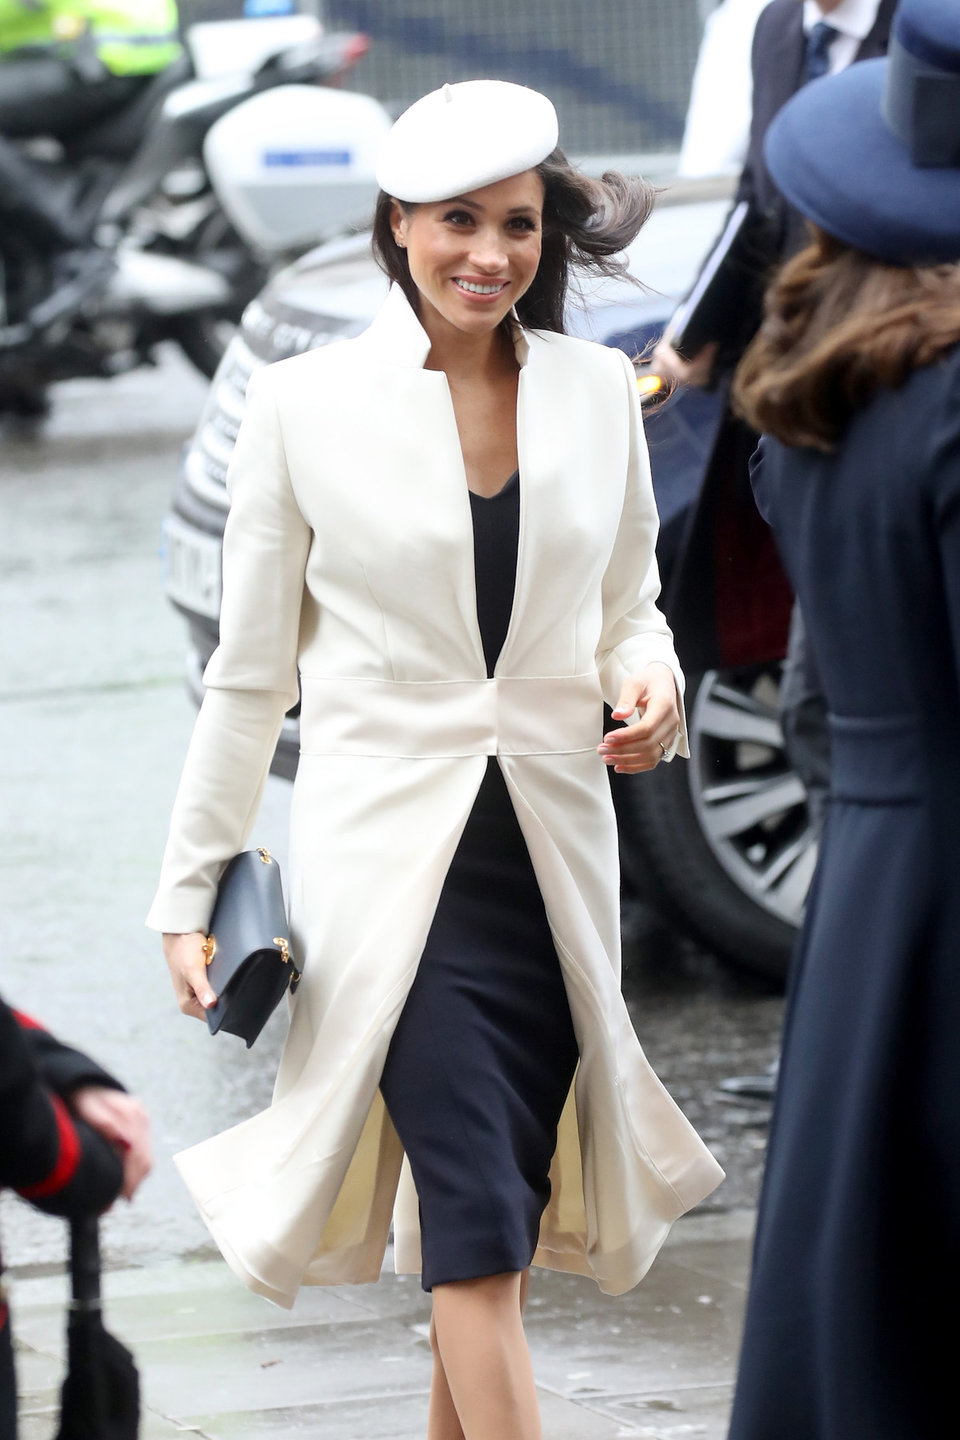 bcd50703246 Meghan Markle Attends Commonwealth Day Services - Meghan s Mirror